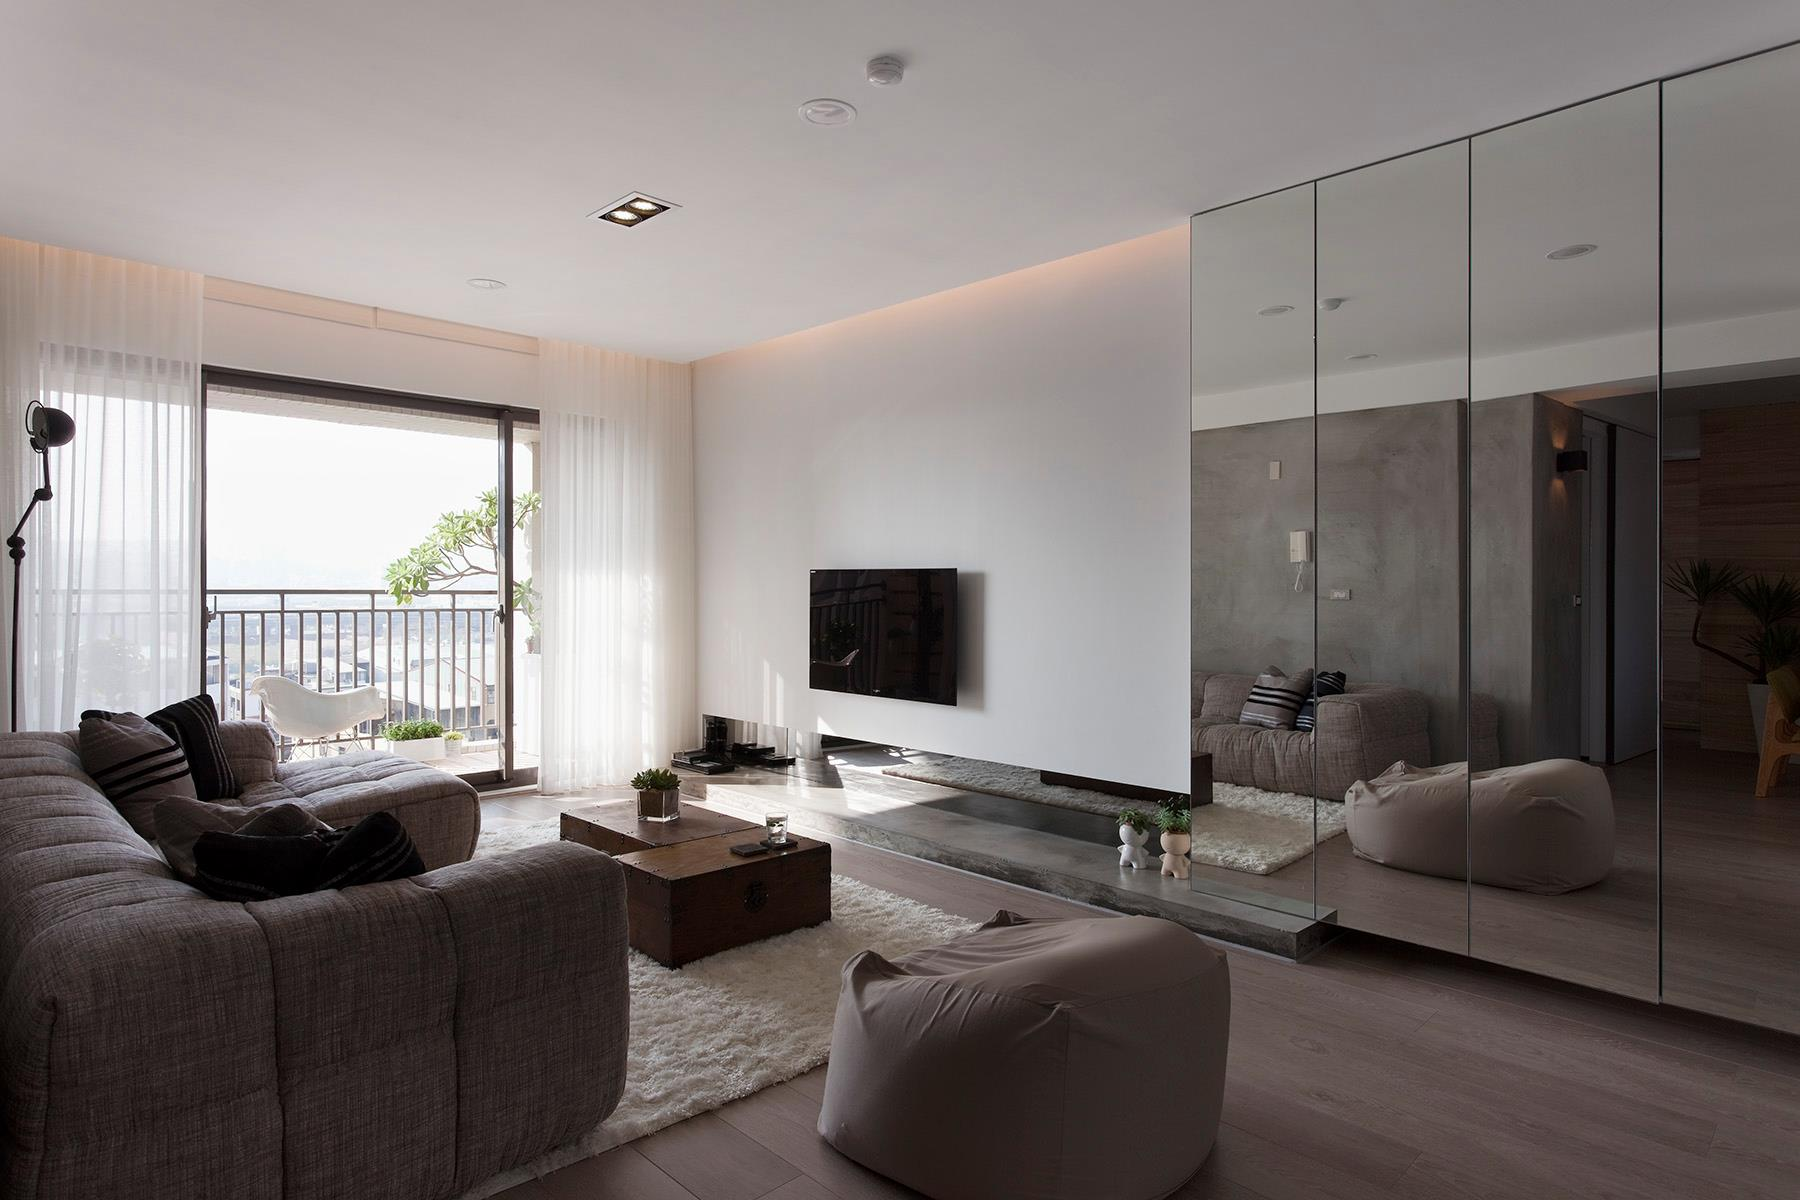 Minimalist apartment in taiwan by fertility design for Minimalist apartment decor